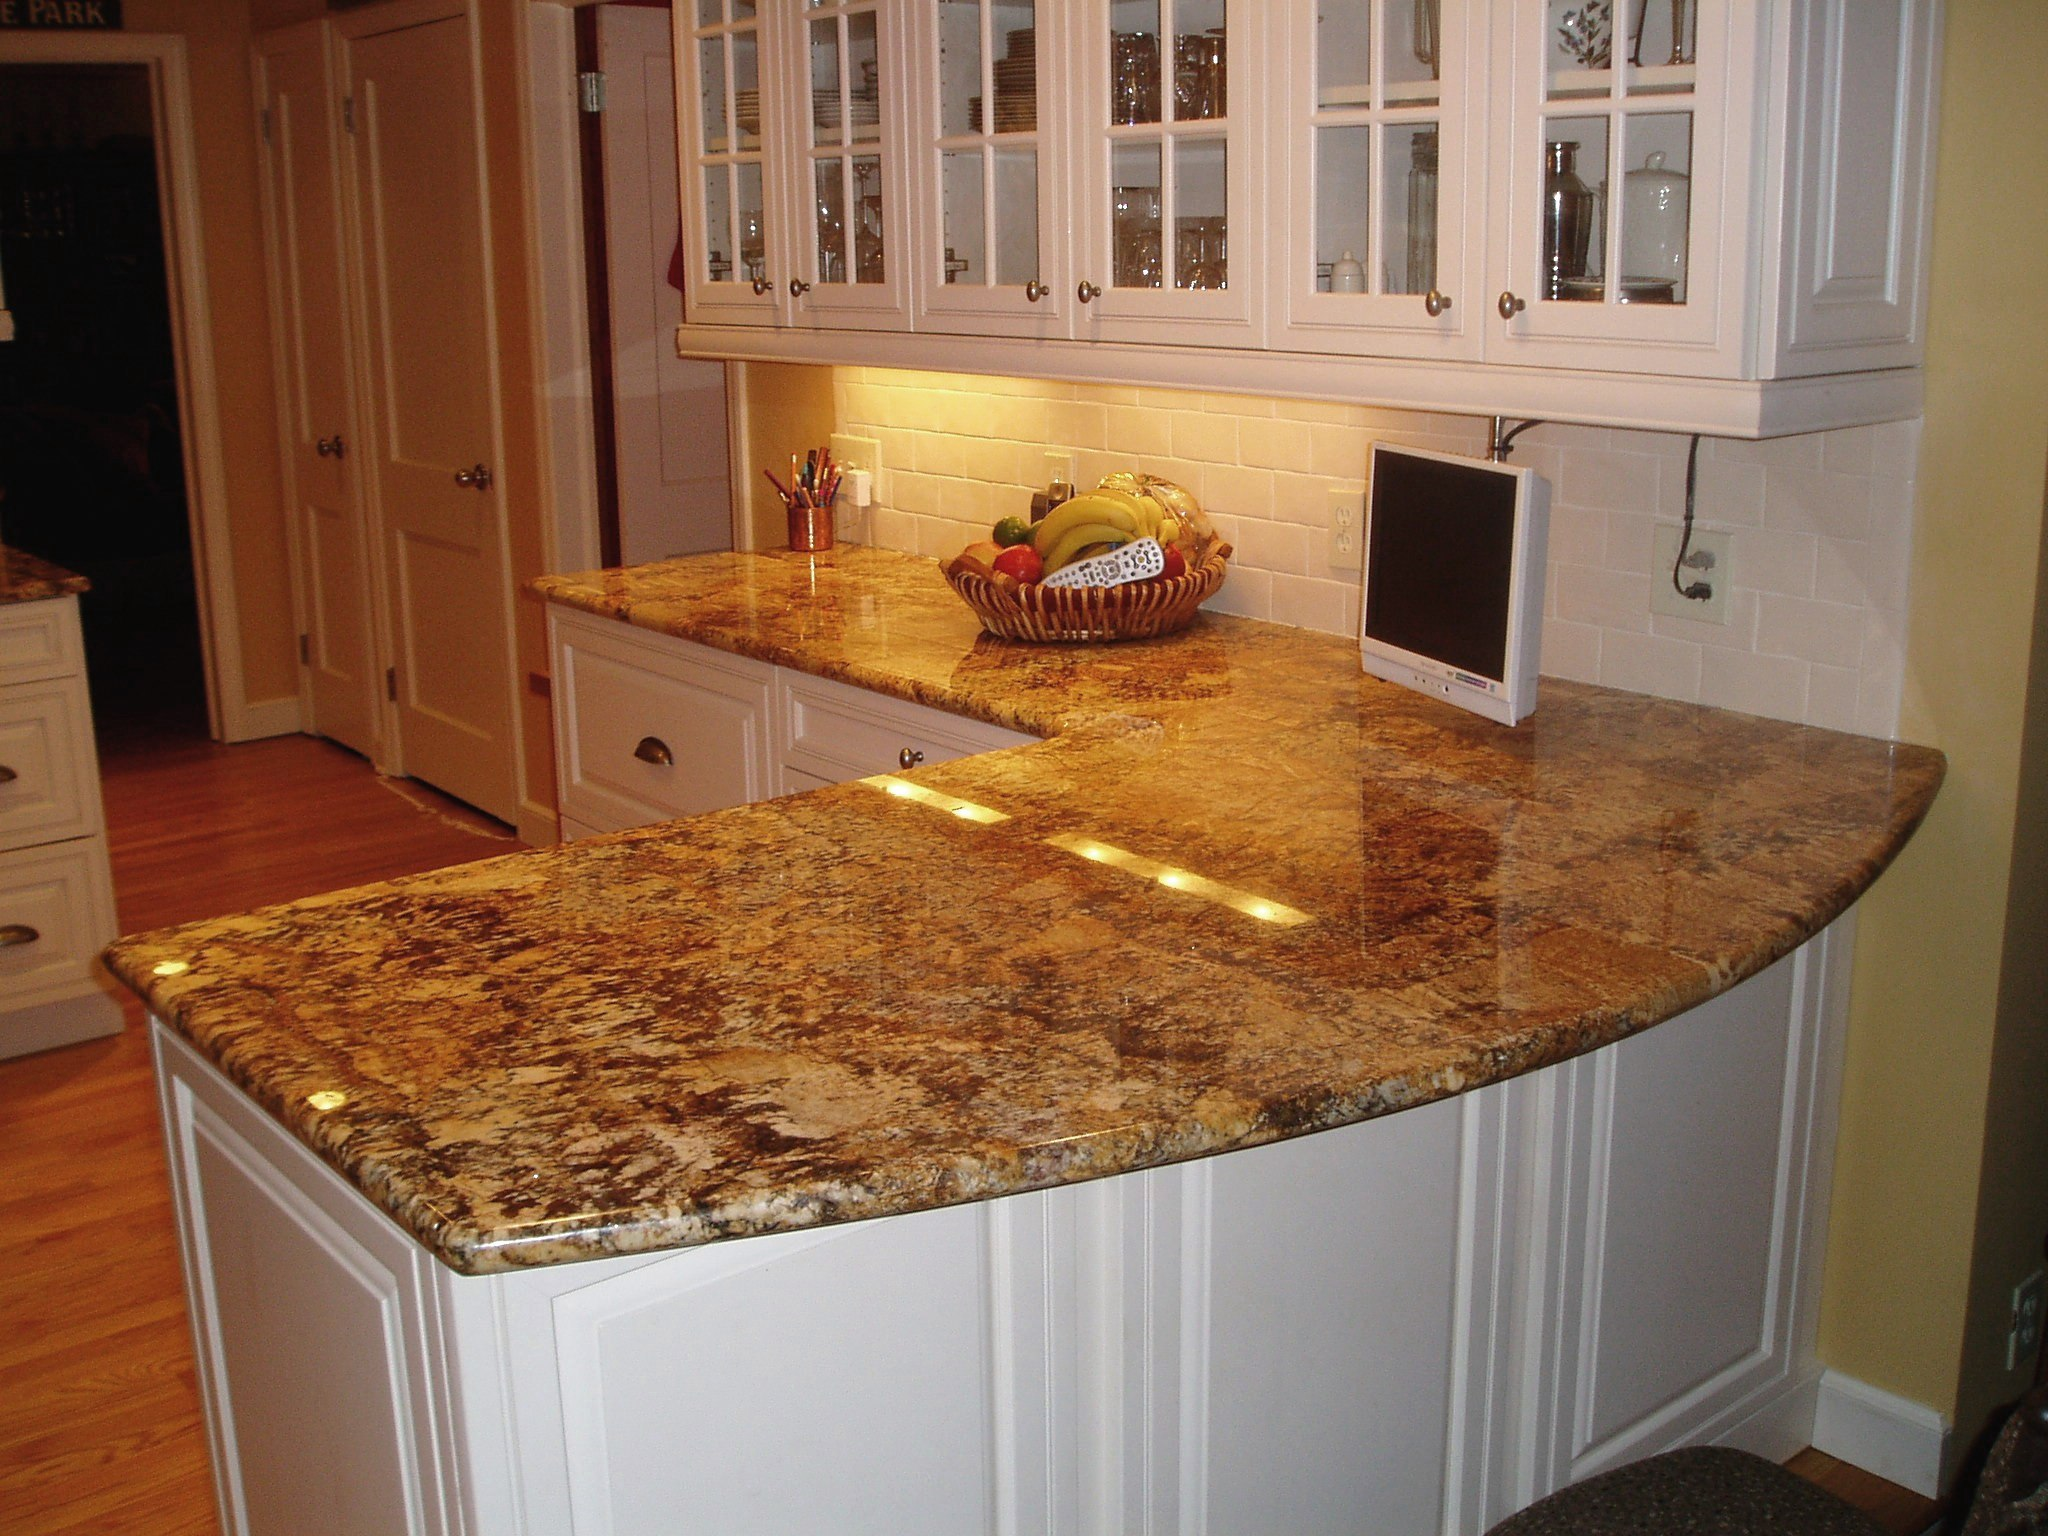 Solutions to Overcome High Price of Granite Countertops ... on What Color Cabinets Go Best With Black Granite Countertops  id=74617